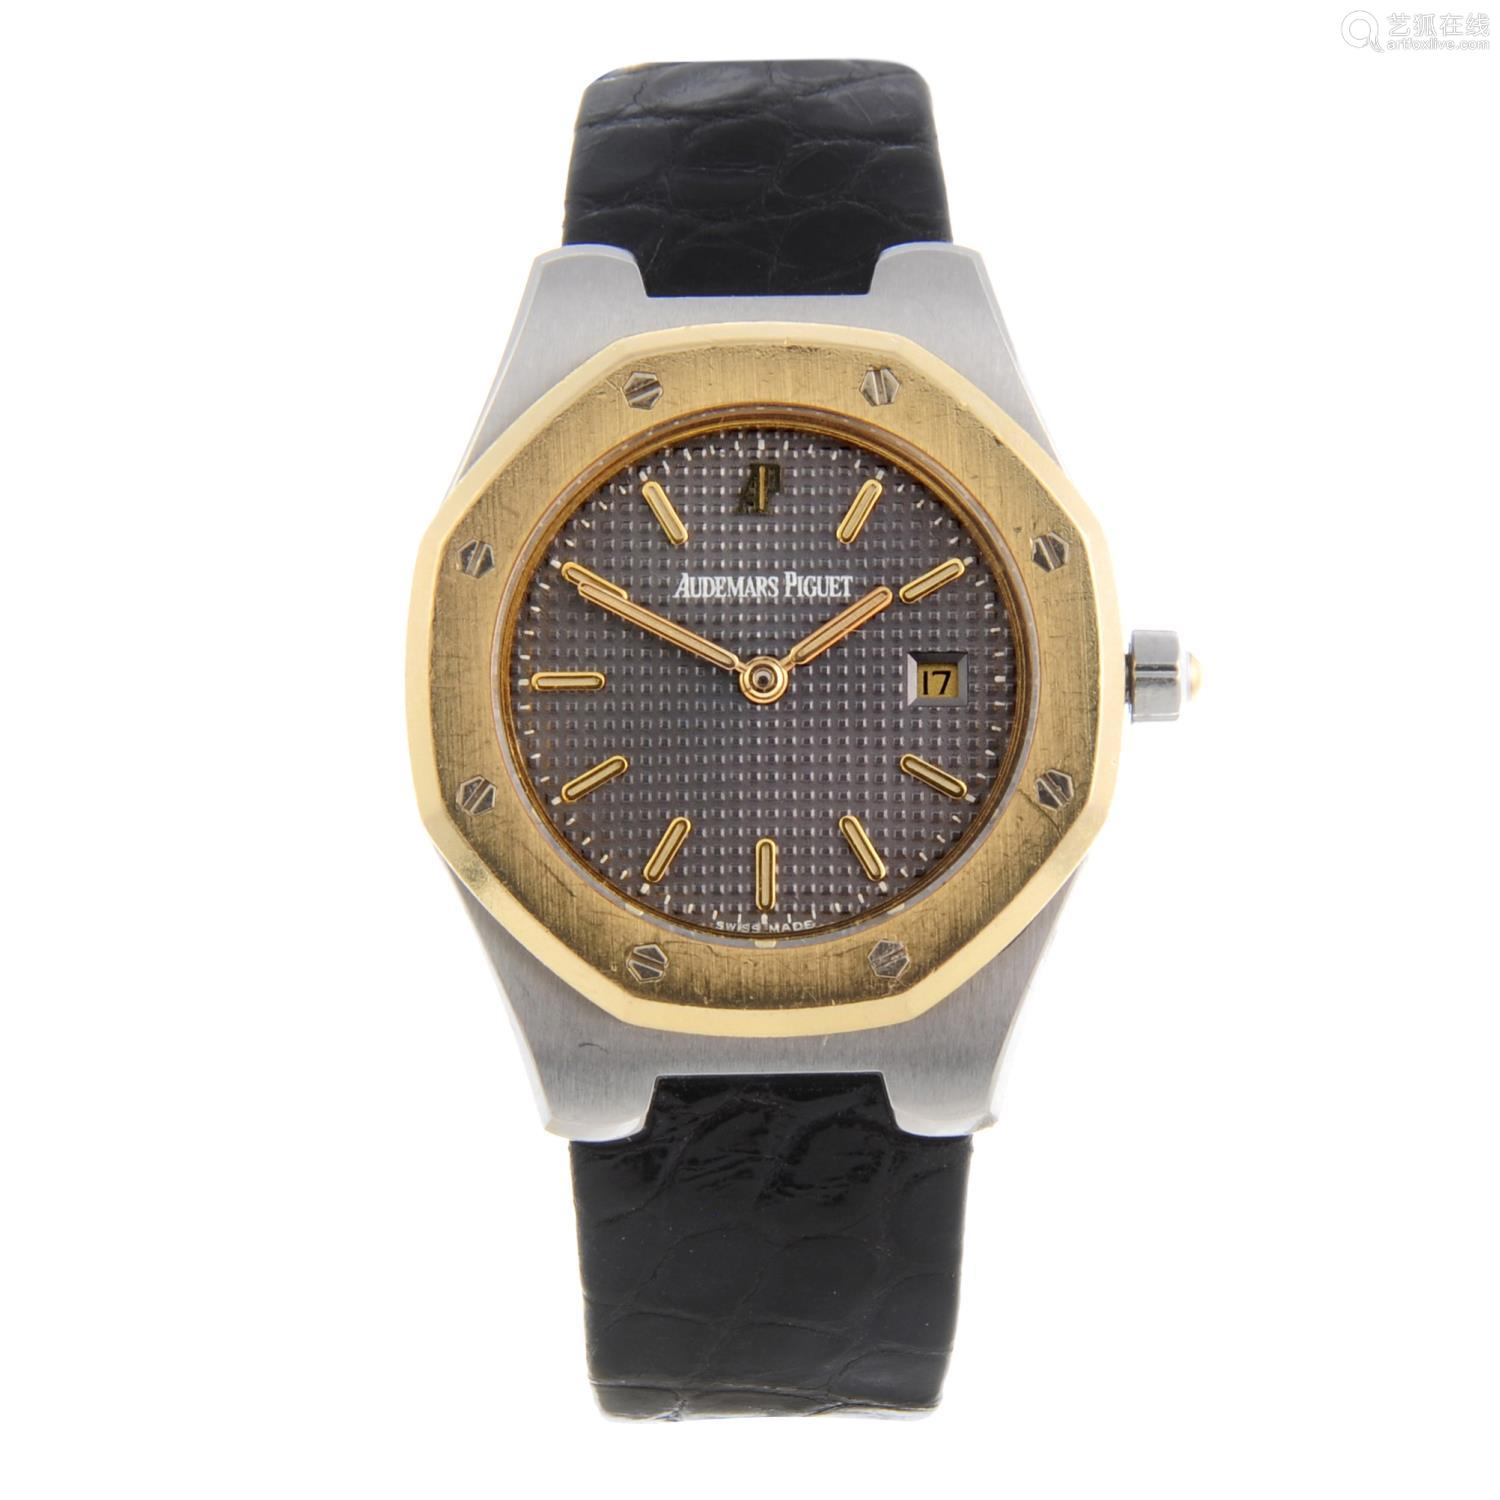 AUDEMARS PIGUET - a lady's Royal Oak wrist watch.